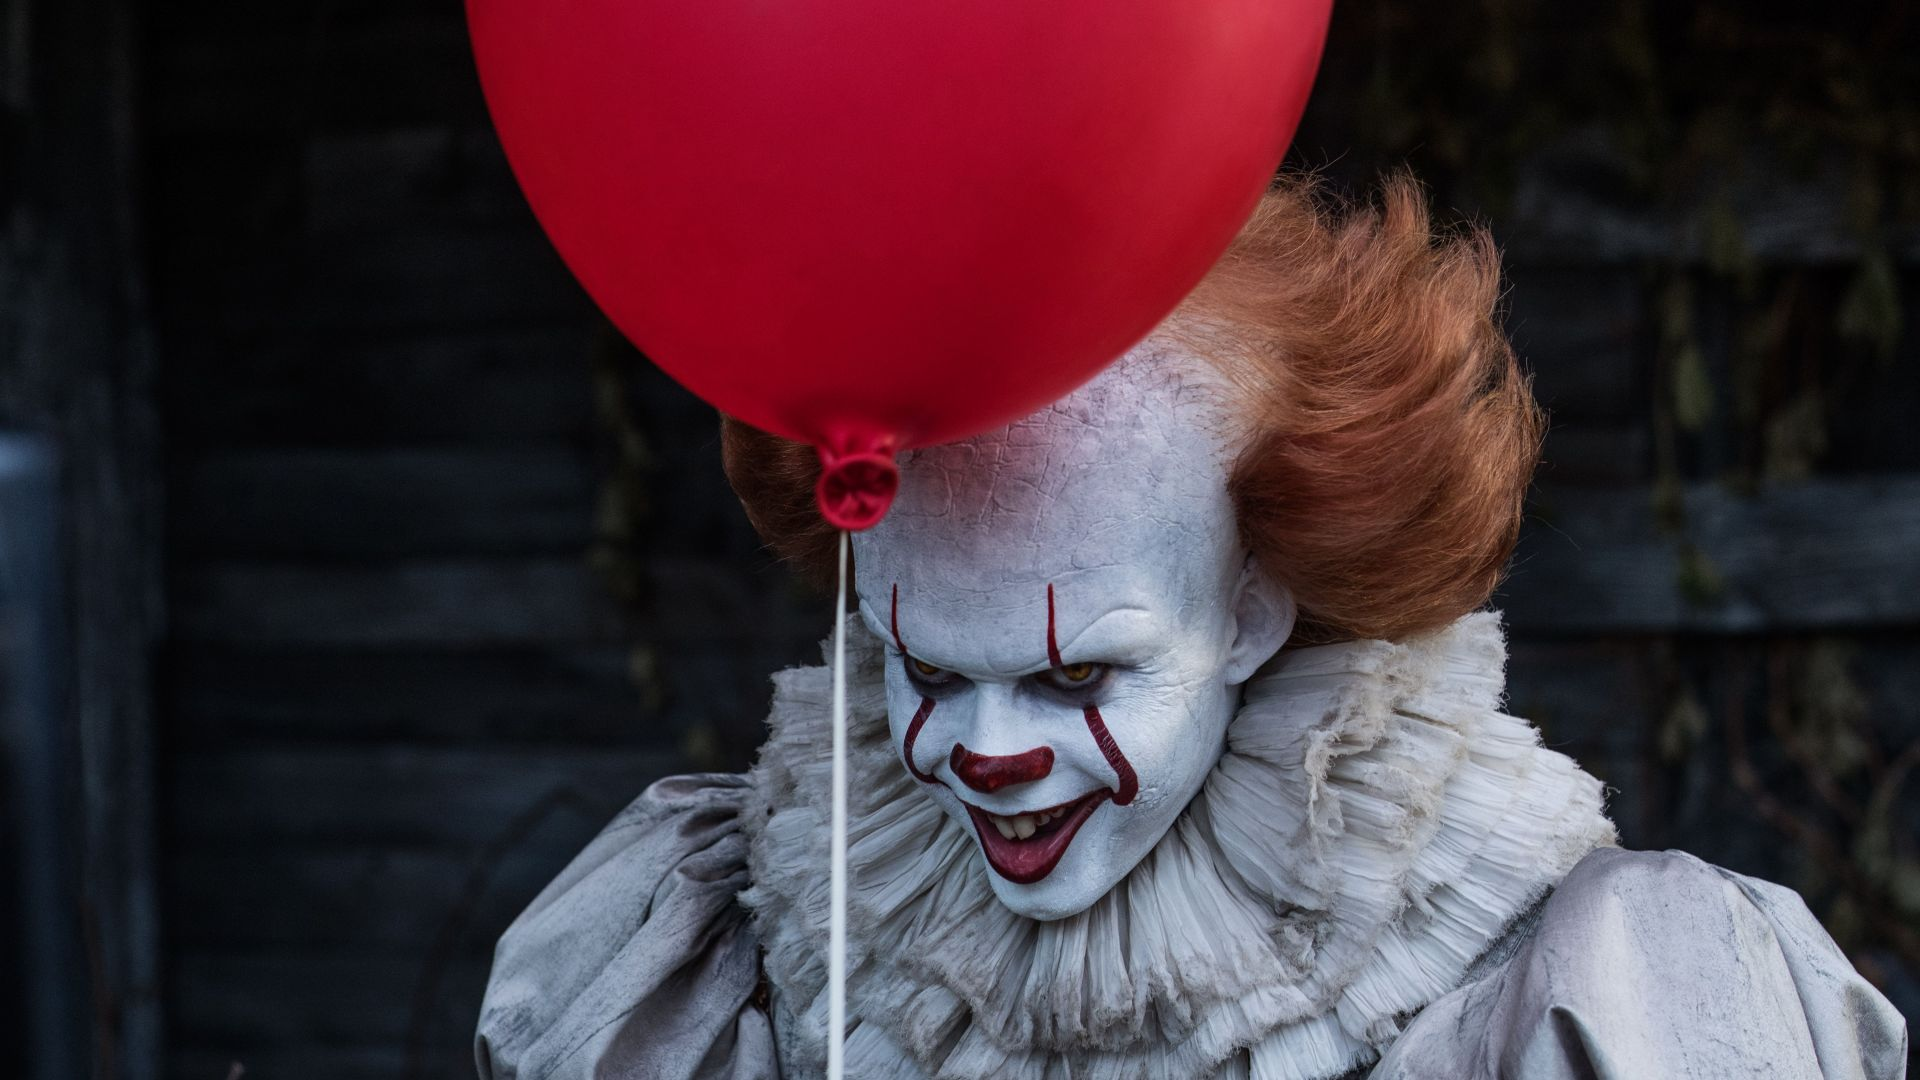 Оно, It, Bill Skarsgard, Scary Clown, 5k (horizontal)